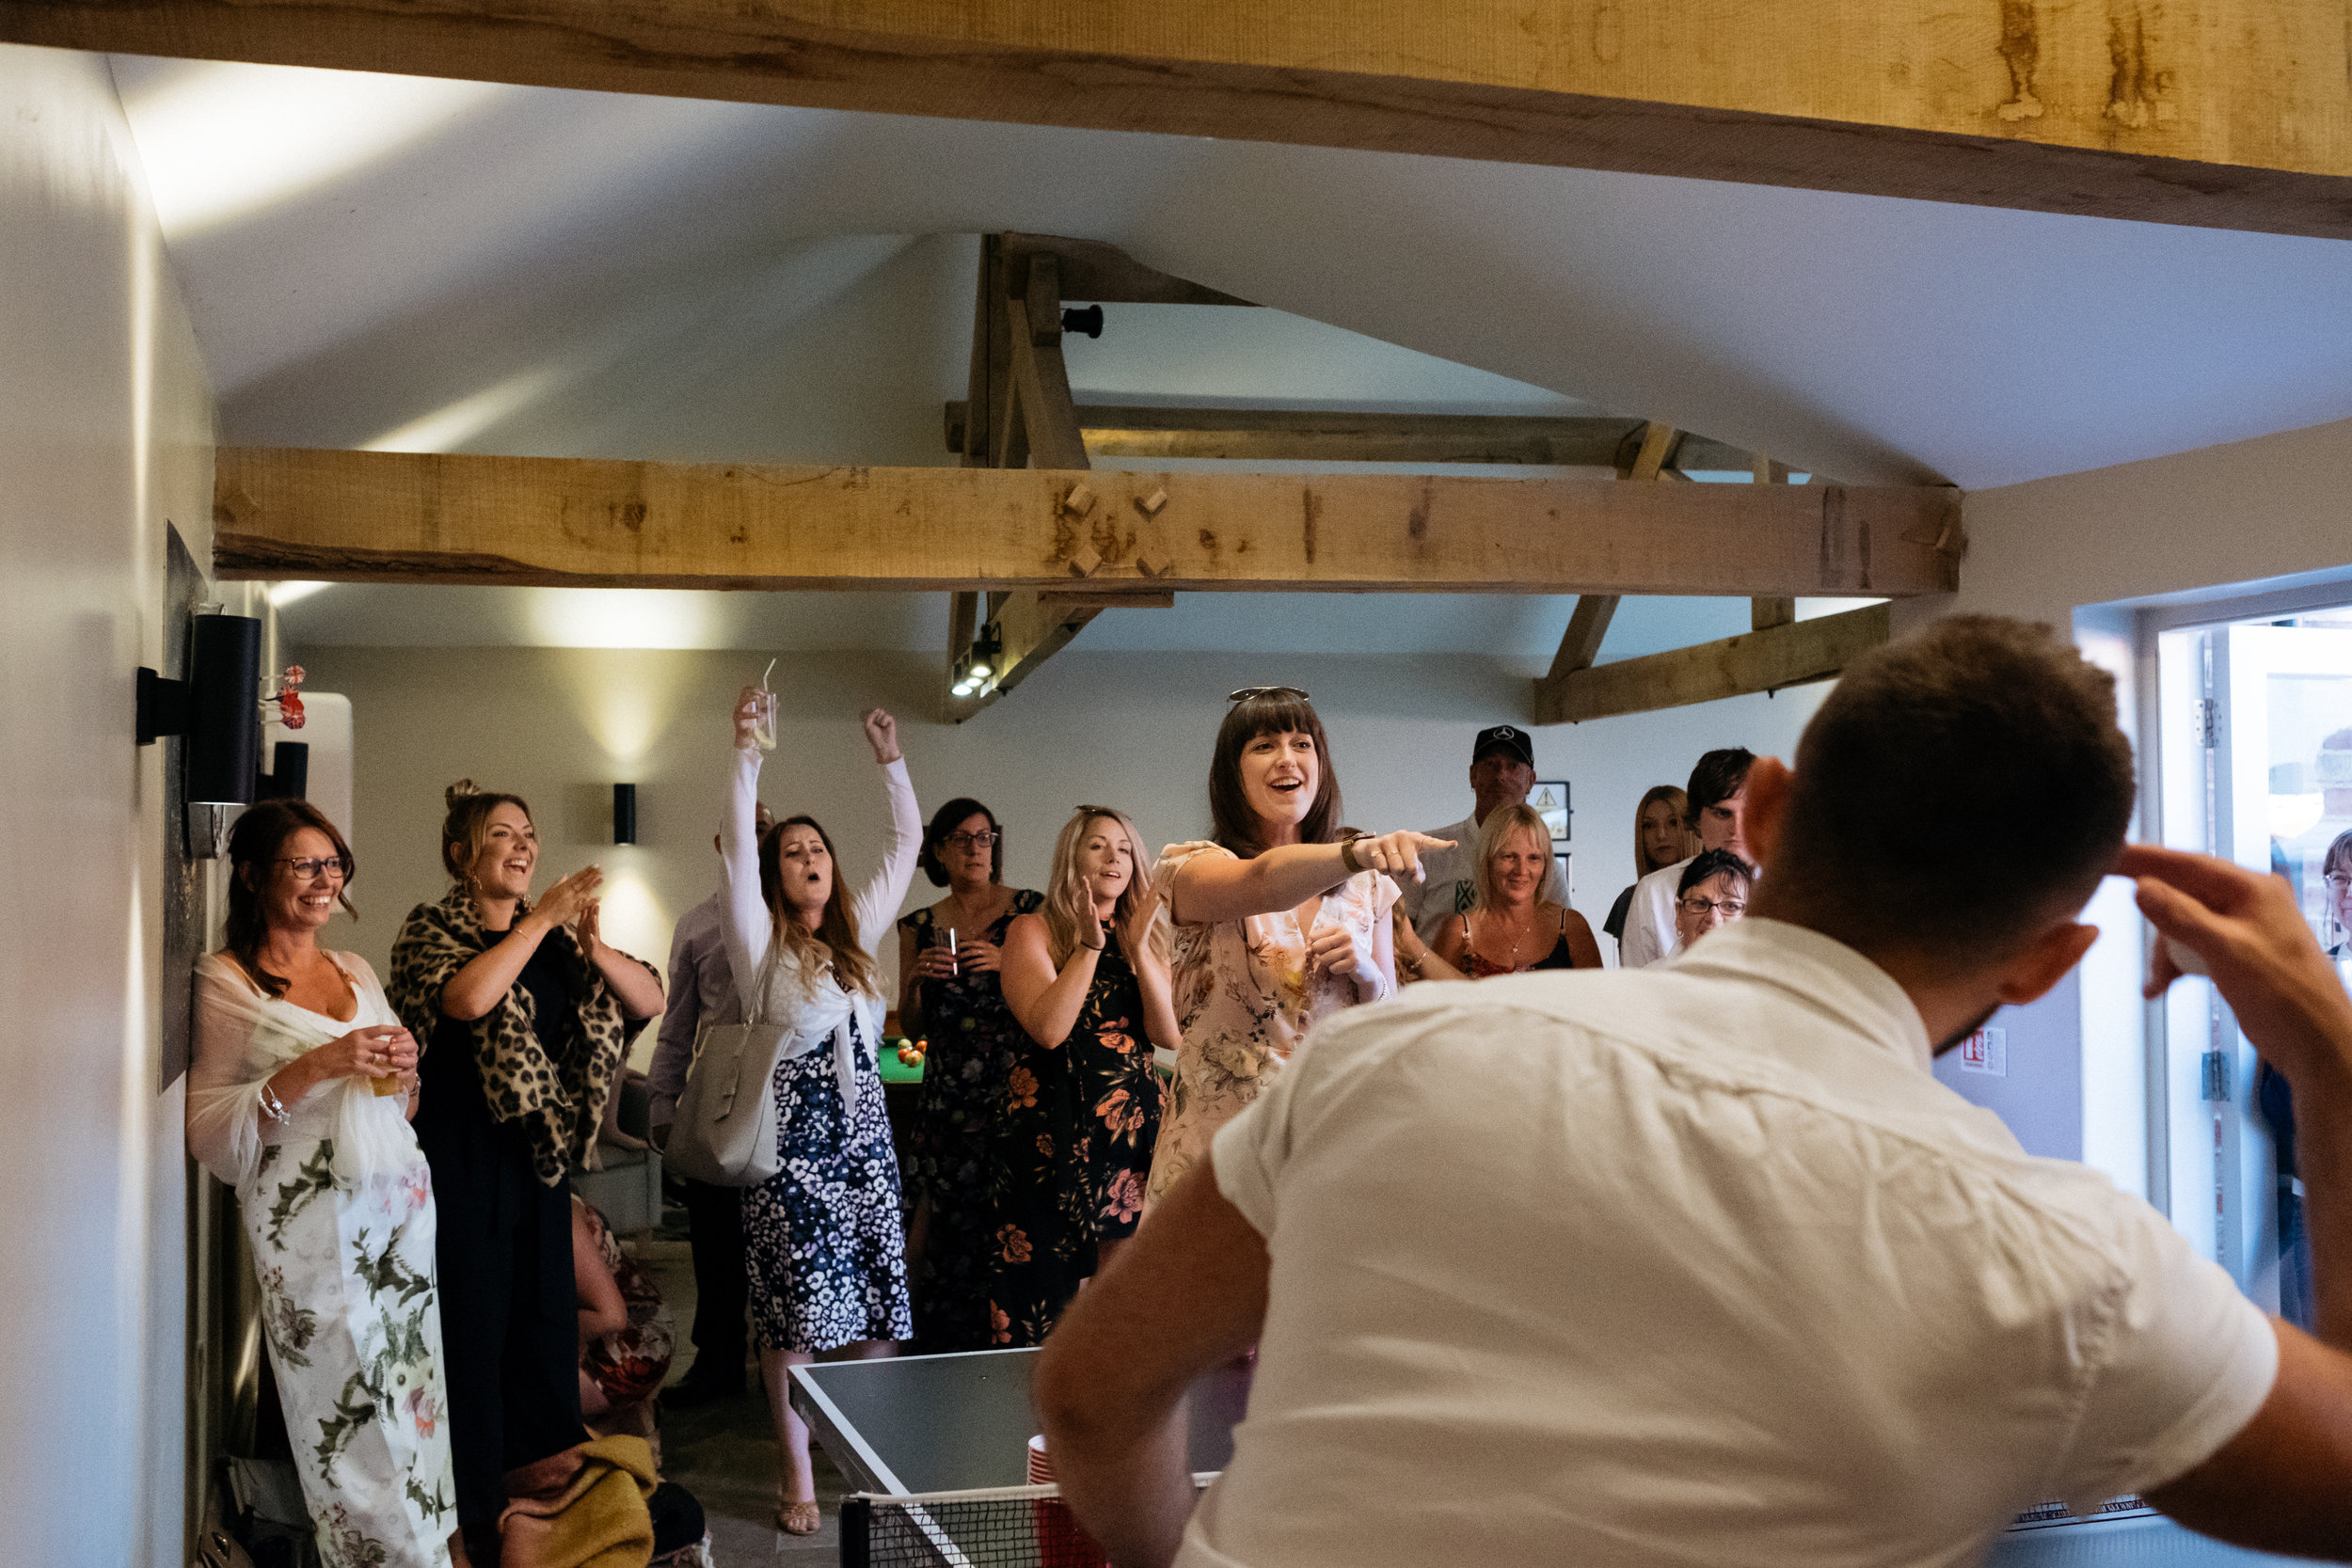 Wedding guests celebrate during beer pong